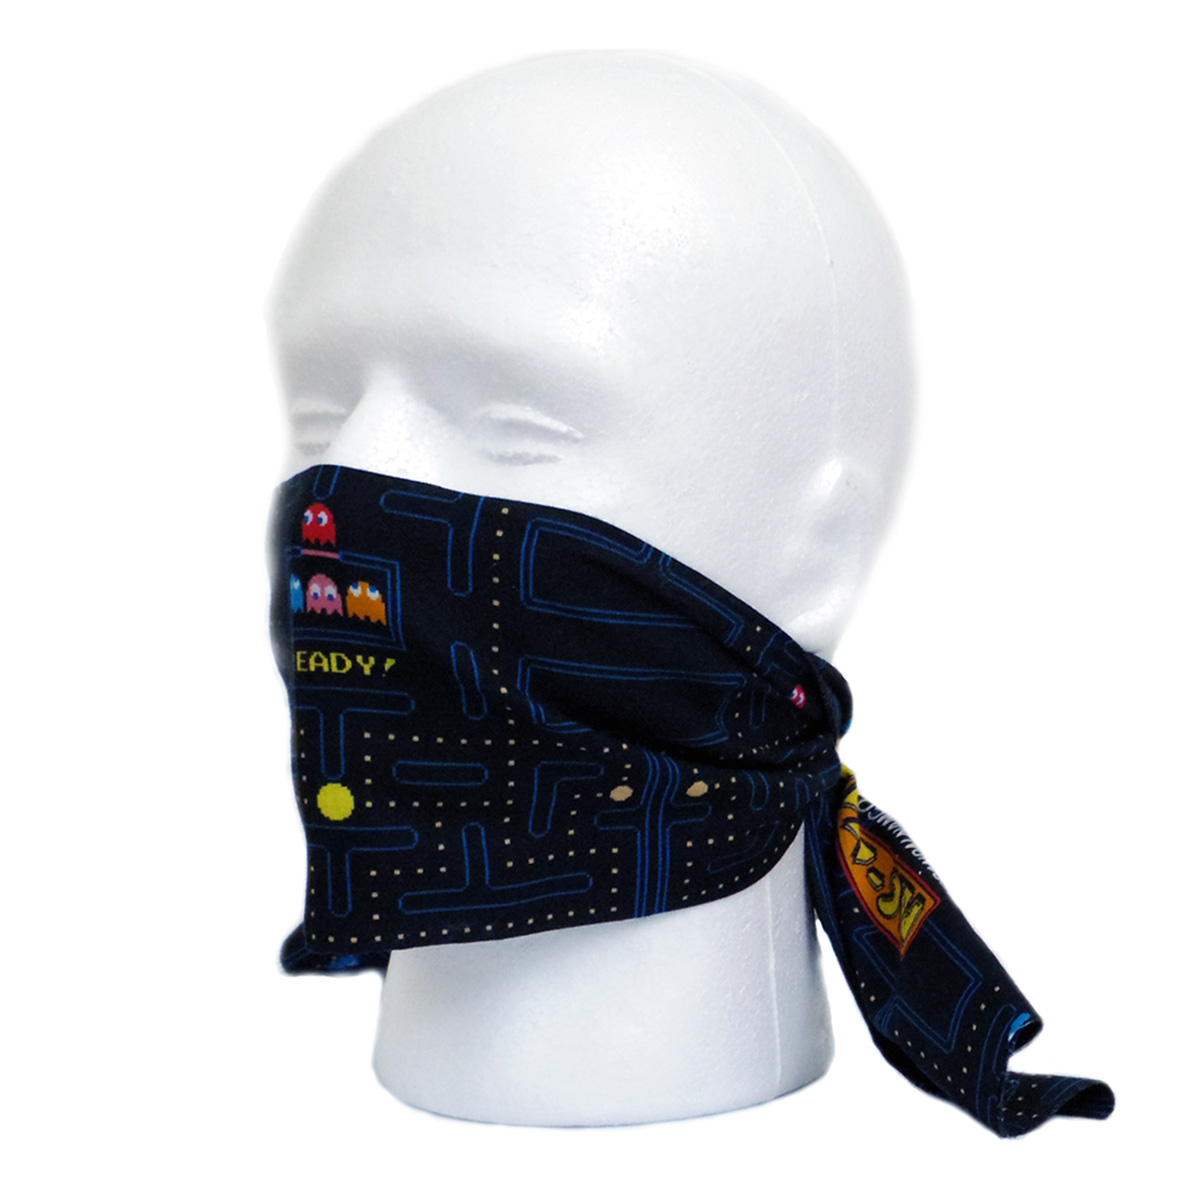 PAC-MAN Tenugui Face Covering[Dec 2020 Delivery]